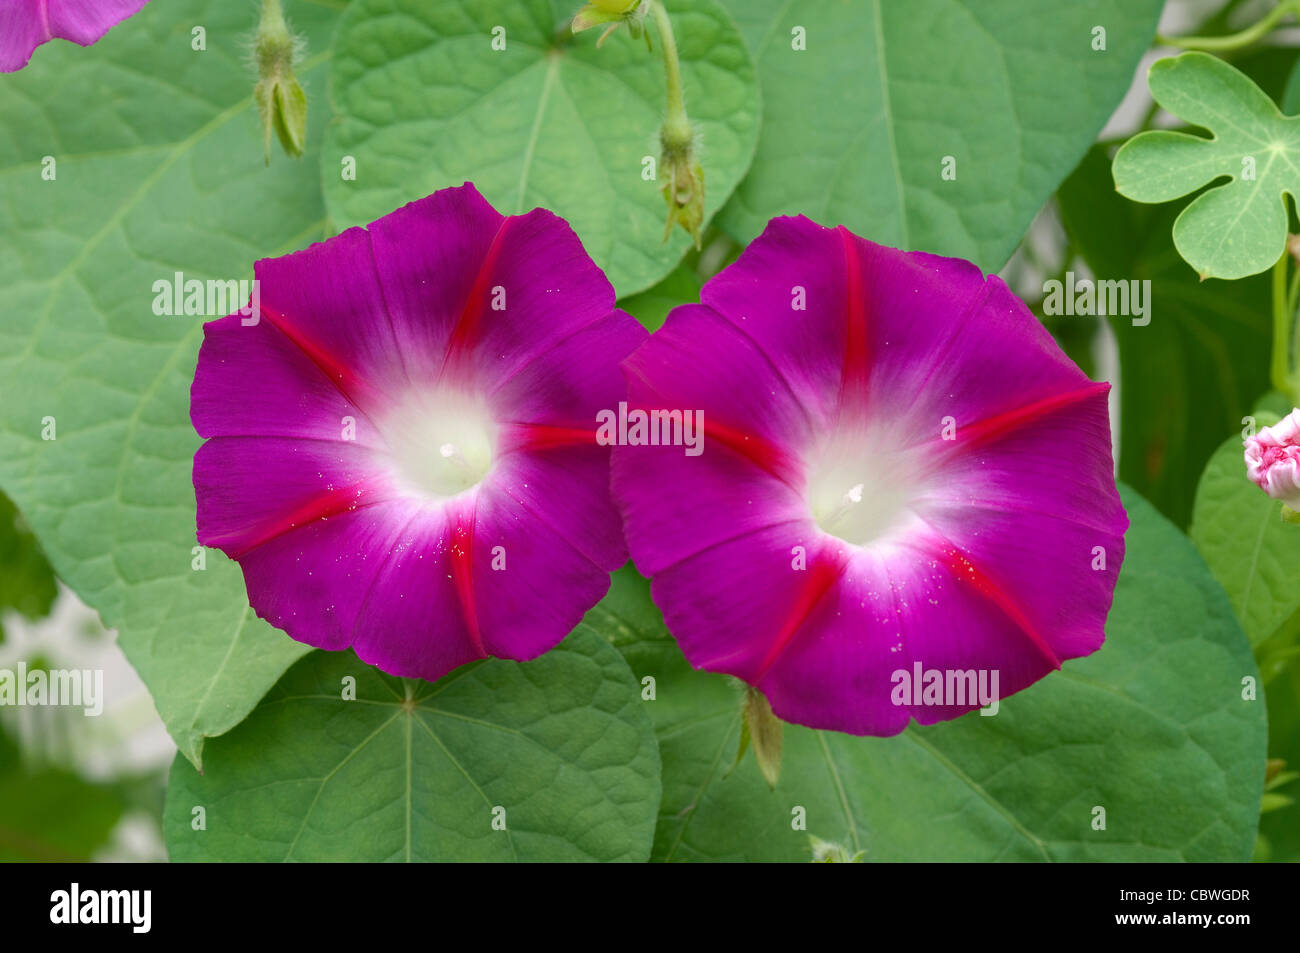 Morning Glory (Ipomoea tricolor). Two flowers. - Stock Image